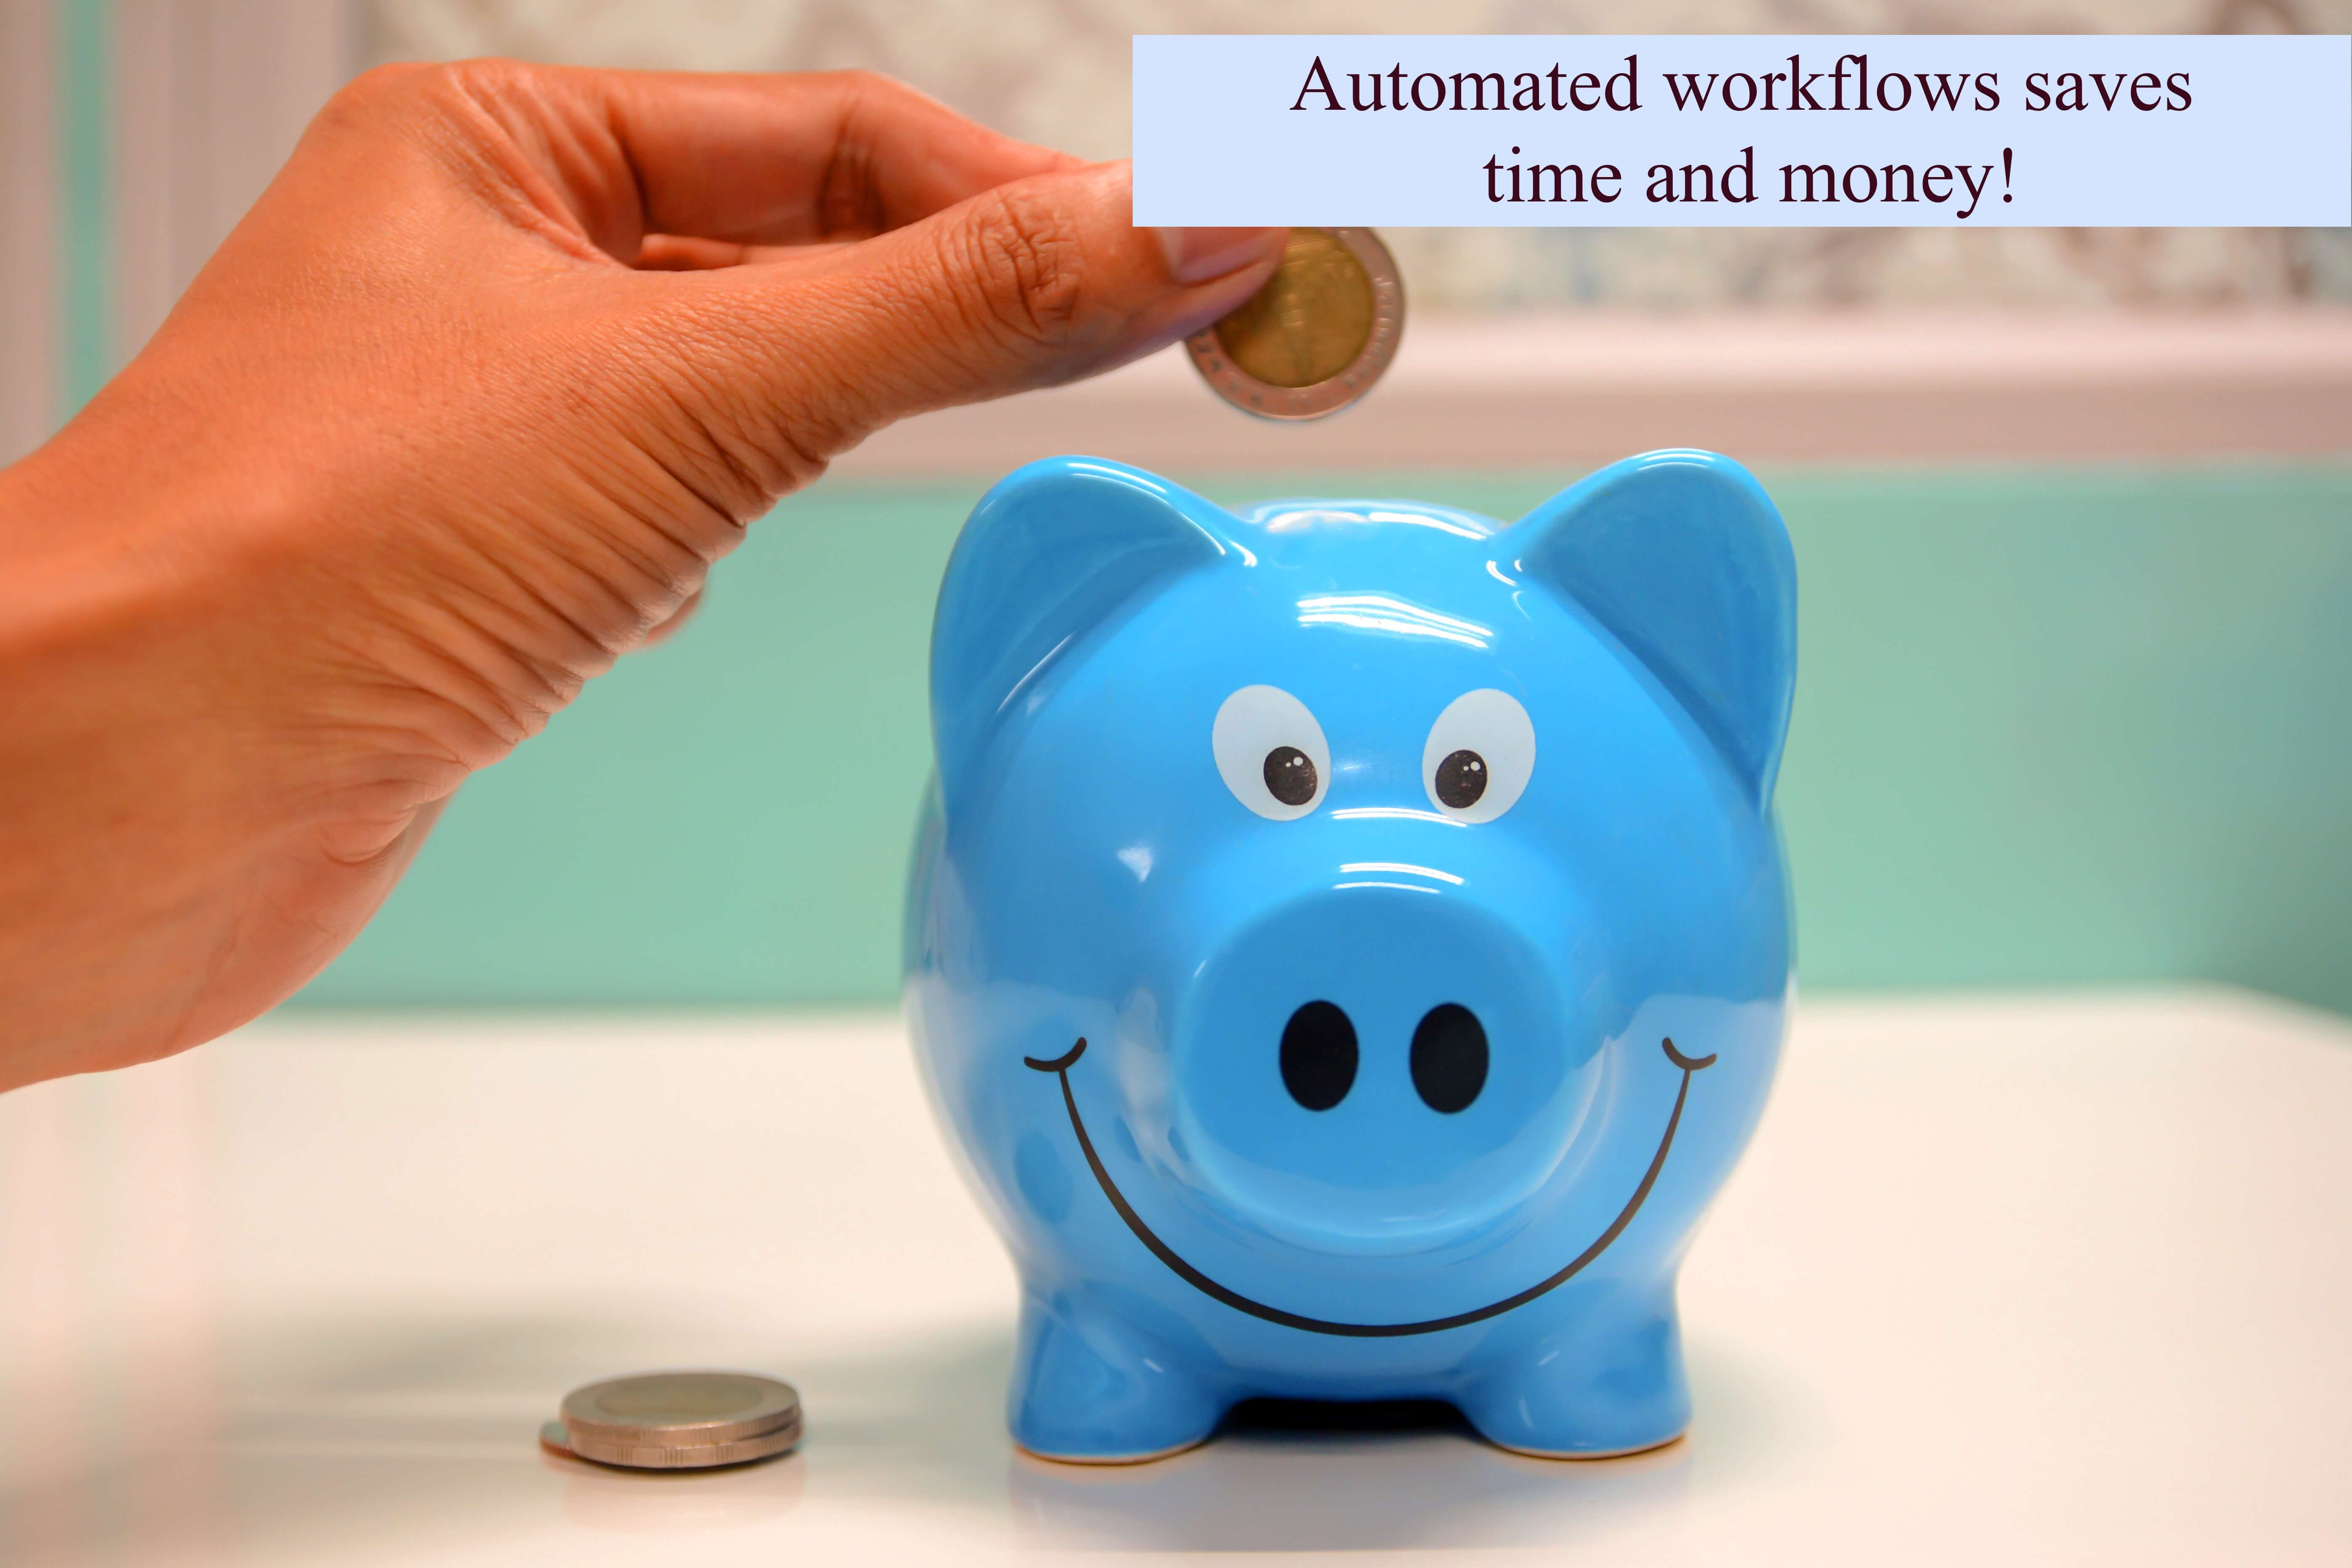 Automated workflows make it easy for service executives as well as customers to get a solution.